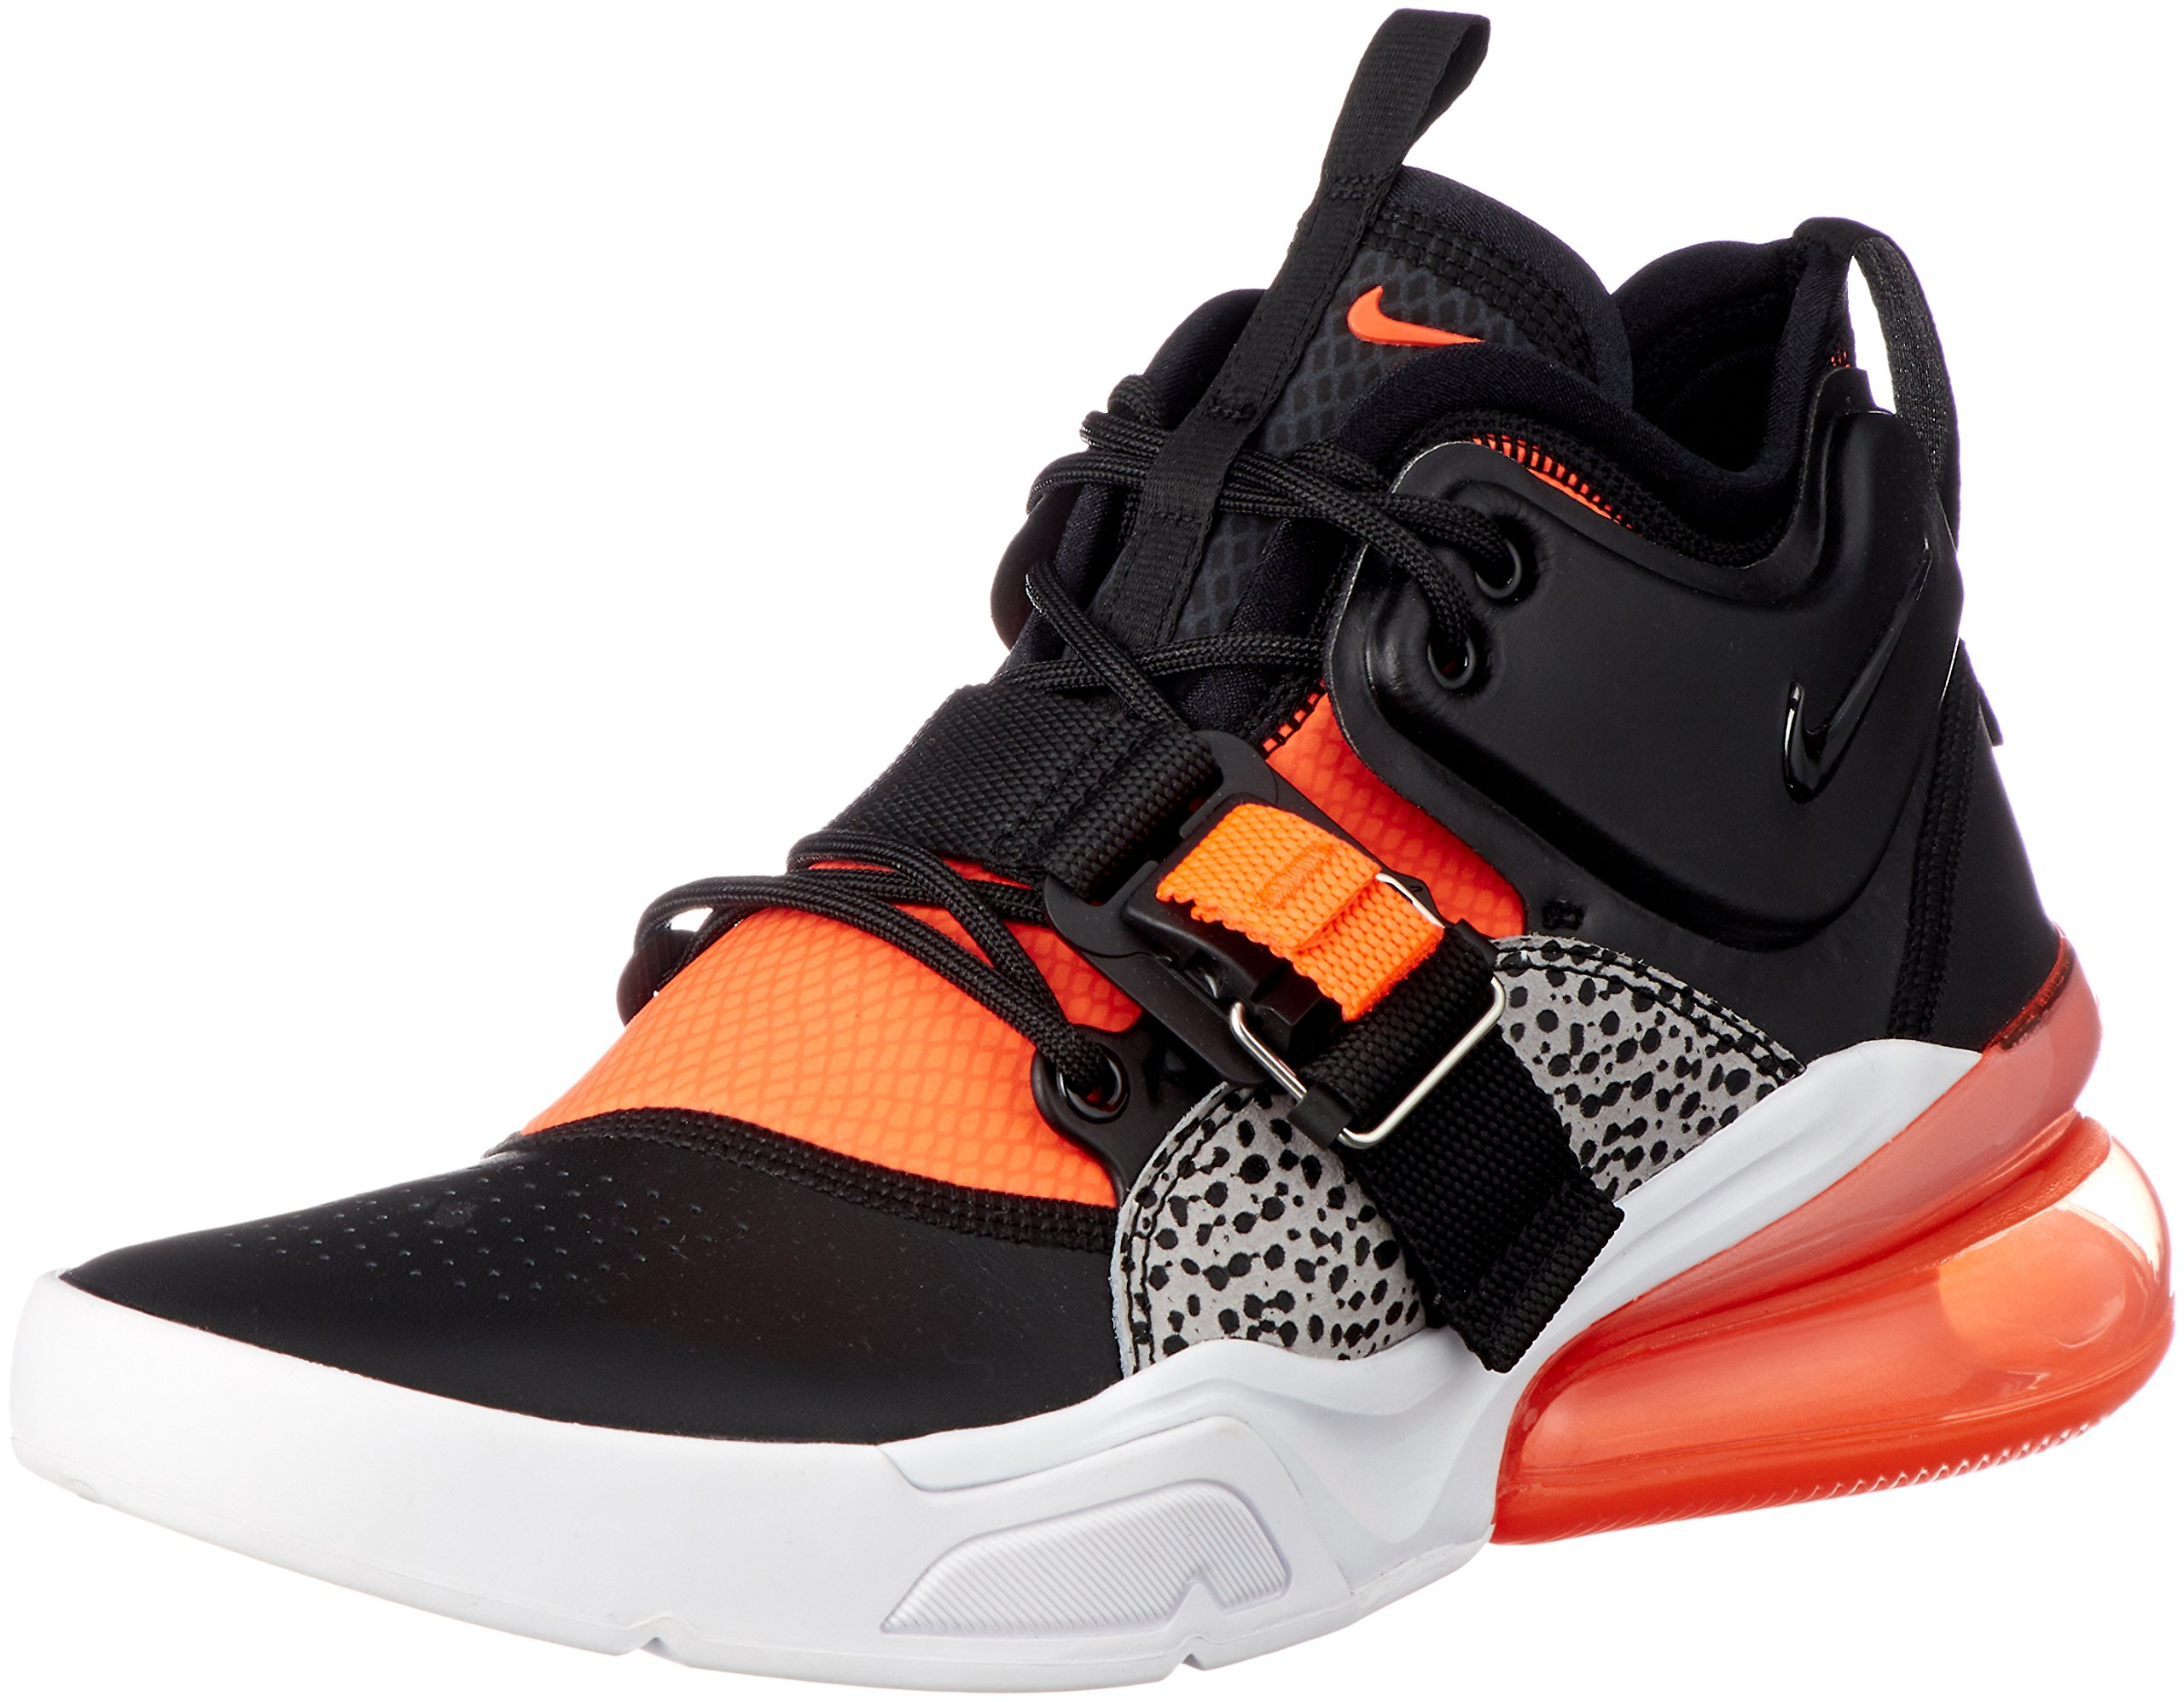 uk availability 6ac08 d06e9 Nike Air Force 270 Mens Shoes Black/Hyper Crimson/Wolf Grey ah6772-004 (8  D(M) US)